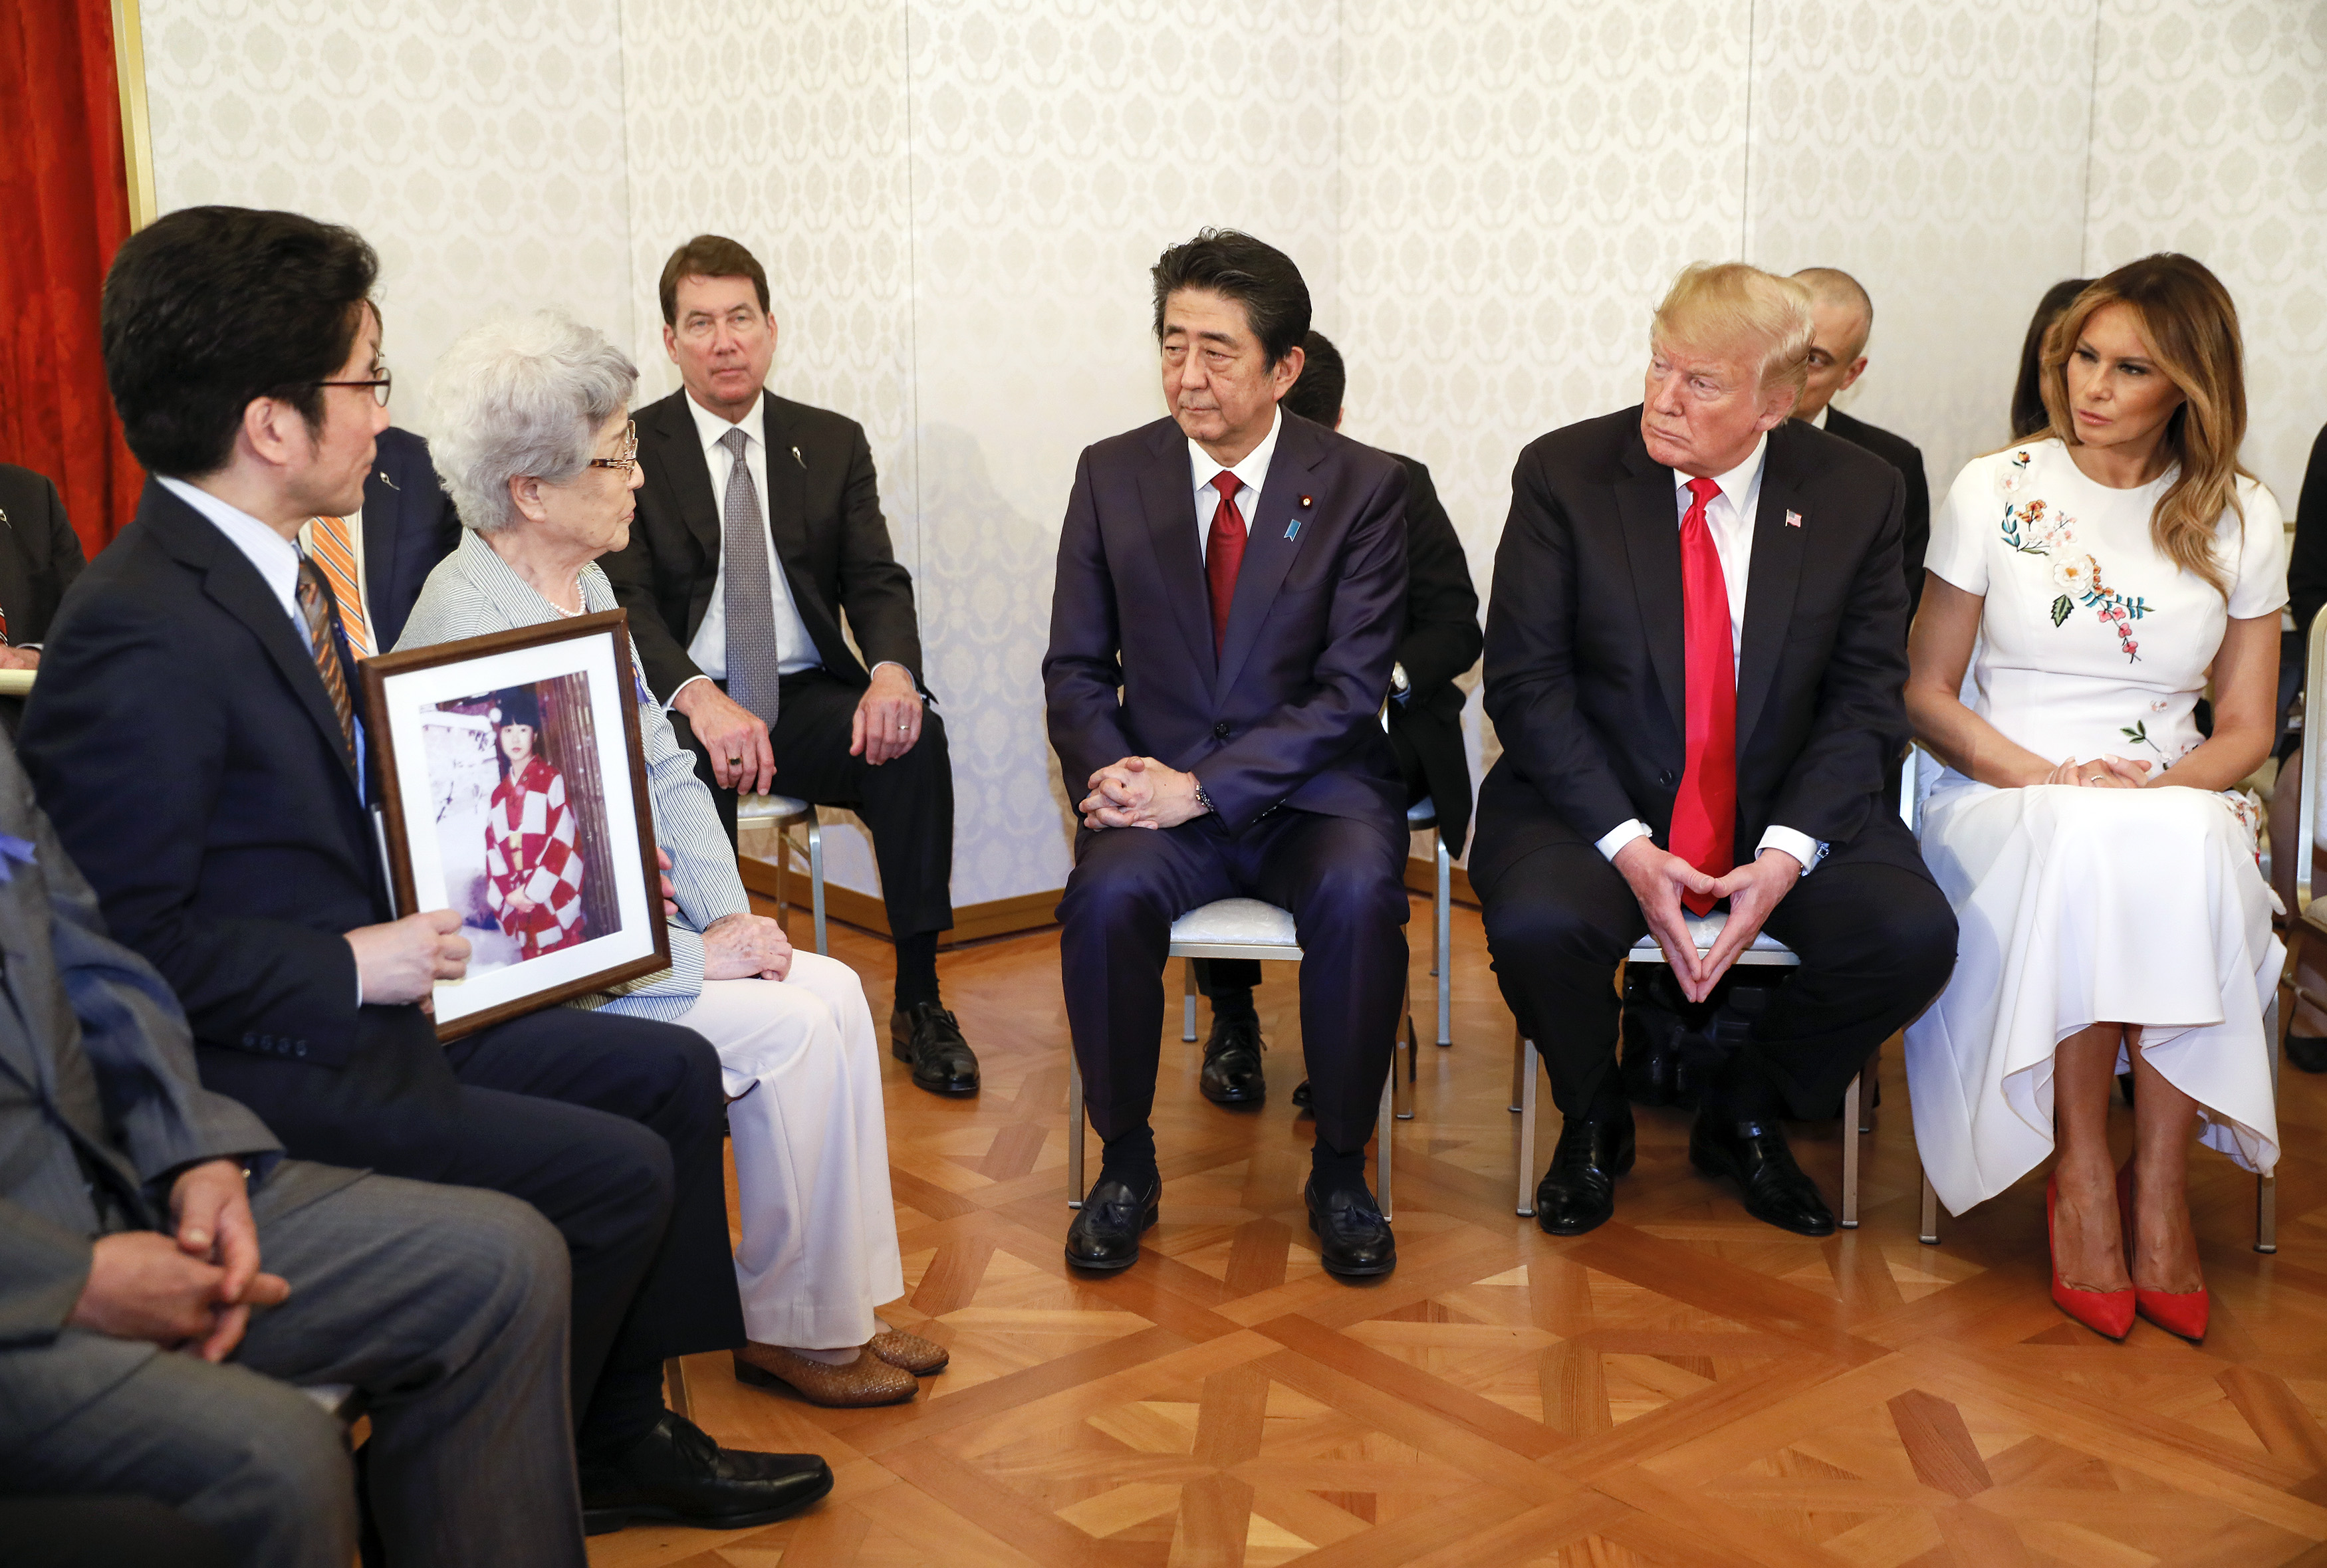 TOKYO, JAPAN - MAY 27: US President Donald Trump listens to Sakie Yokota (2-L), the mother of Megumi who was kidnapped by North Korean agents at the age of 13 in 1977, as he meets the families of Japanese abductees by North Korea with First Lady Melania (R), Japanese Prime Minister Shinzo Abe (C) at Akasaka State Guesthouse on May 27, 2019 in Tokyo, Japan. (Photo by Kimimasa Mayama - Pool/Getty Images)